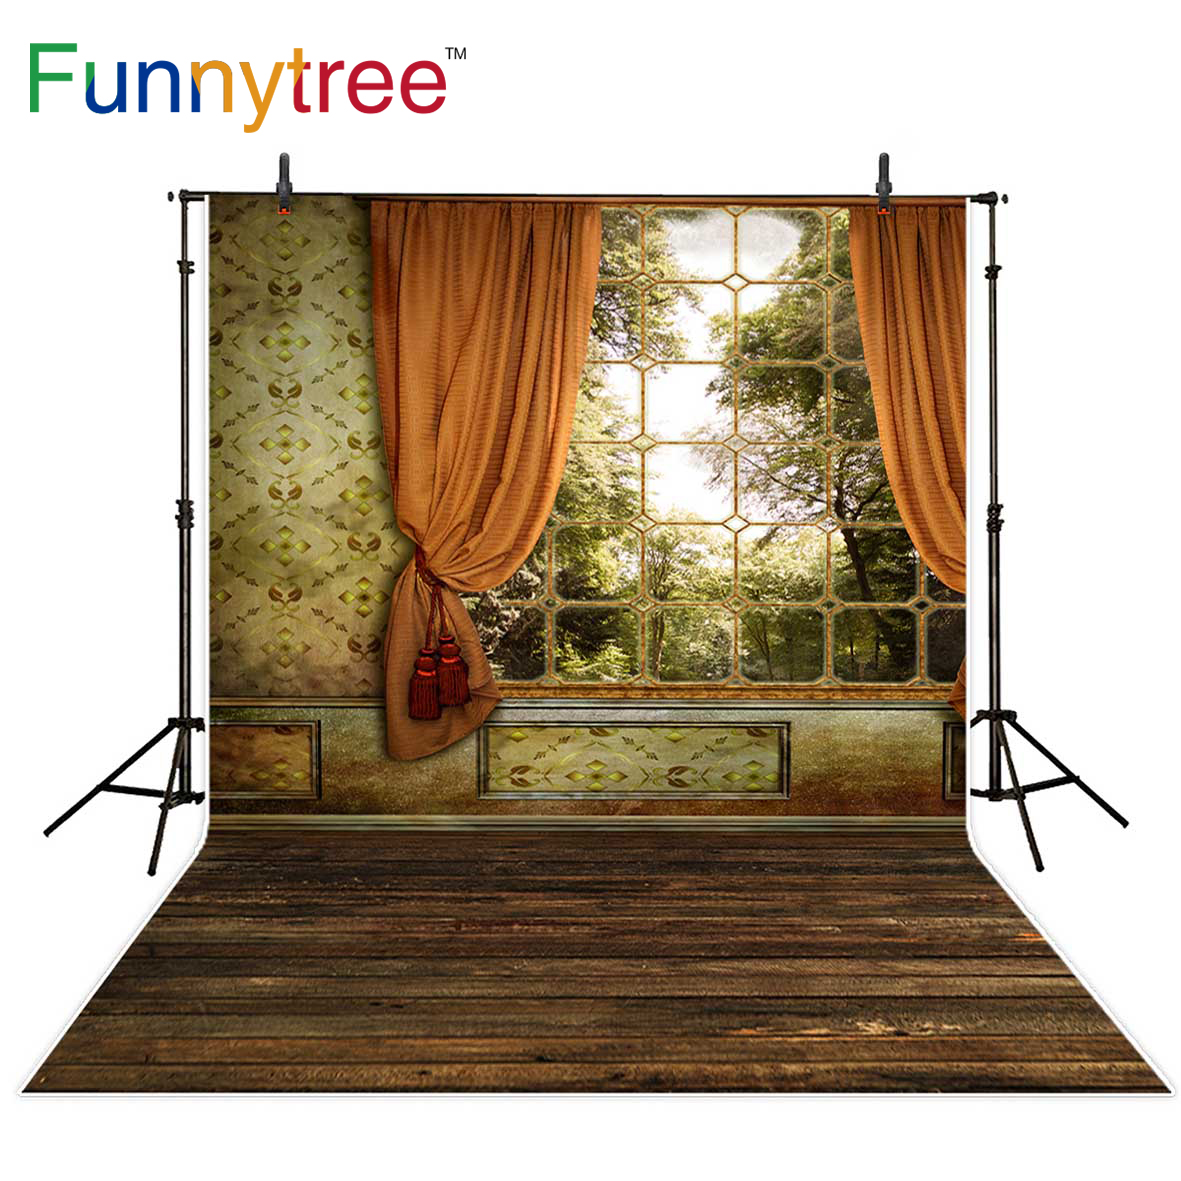 Funnytree photography backdrop vintage damask window tree wood floor home background photography photo prop professional